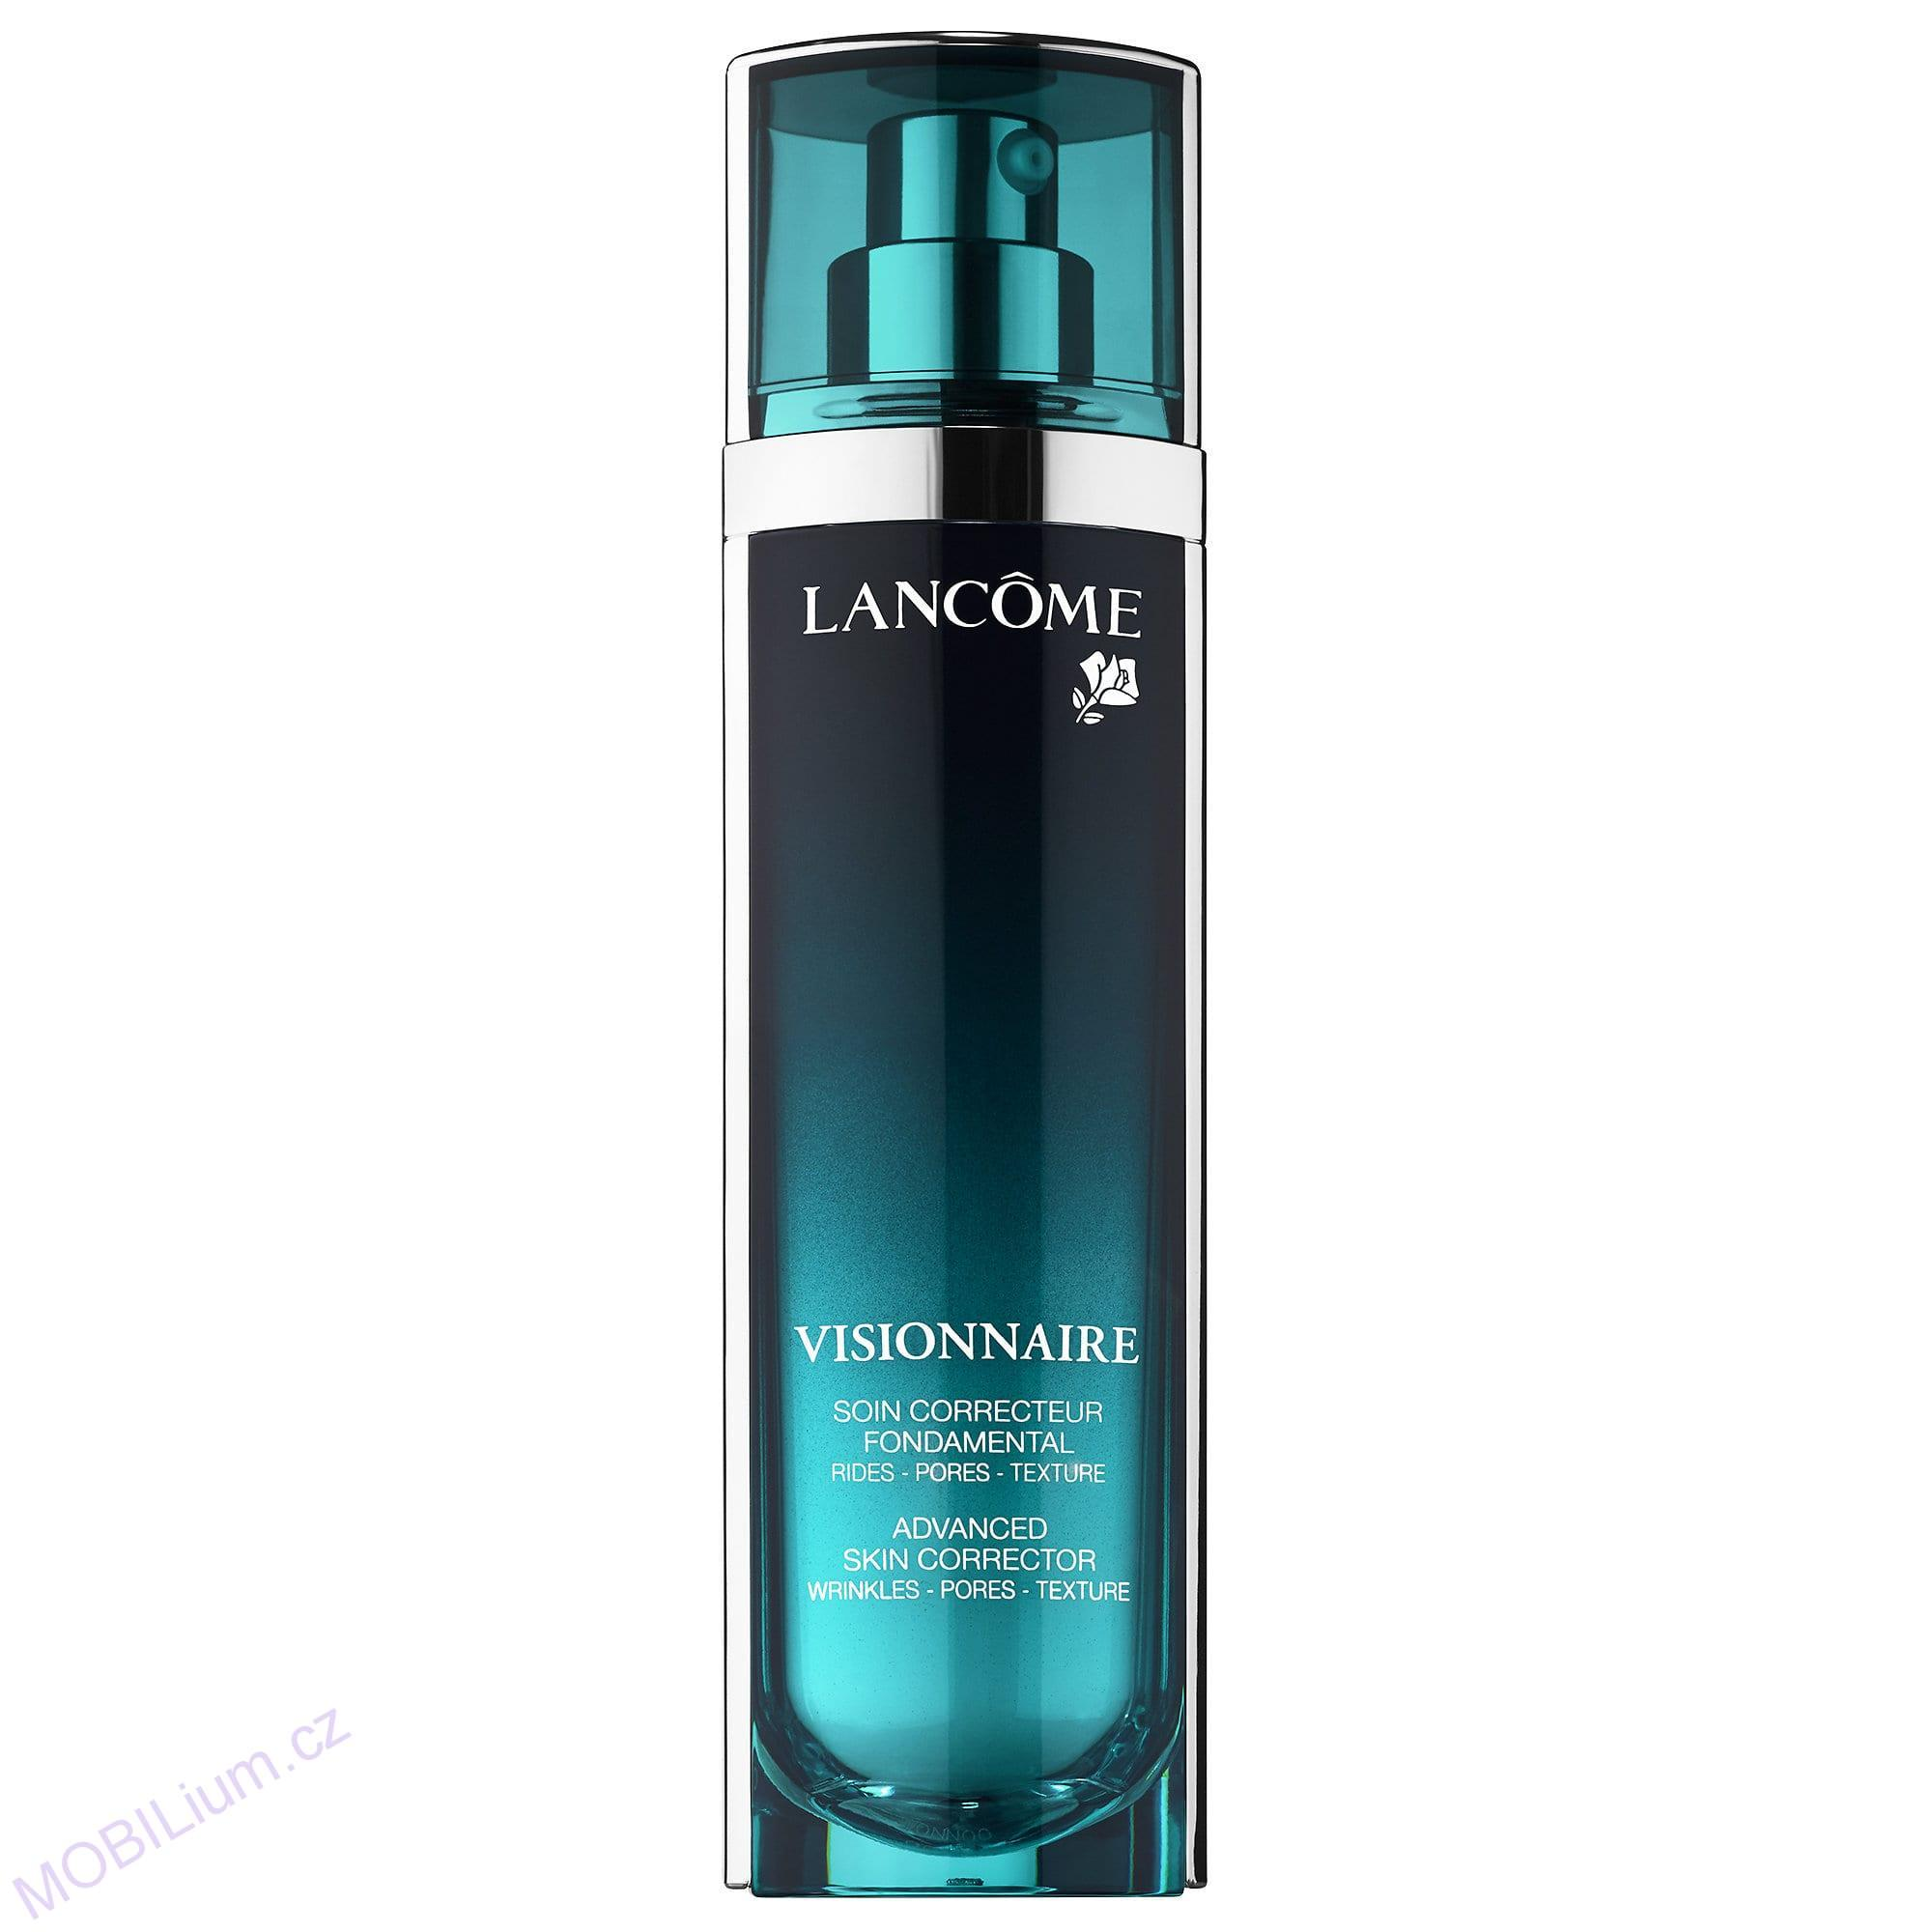 Lancome Visionnaire skin Corrector 50 ml